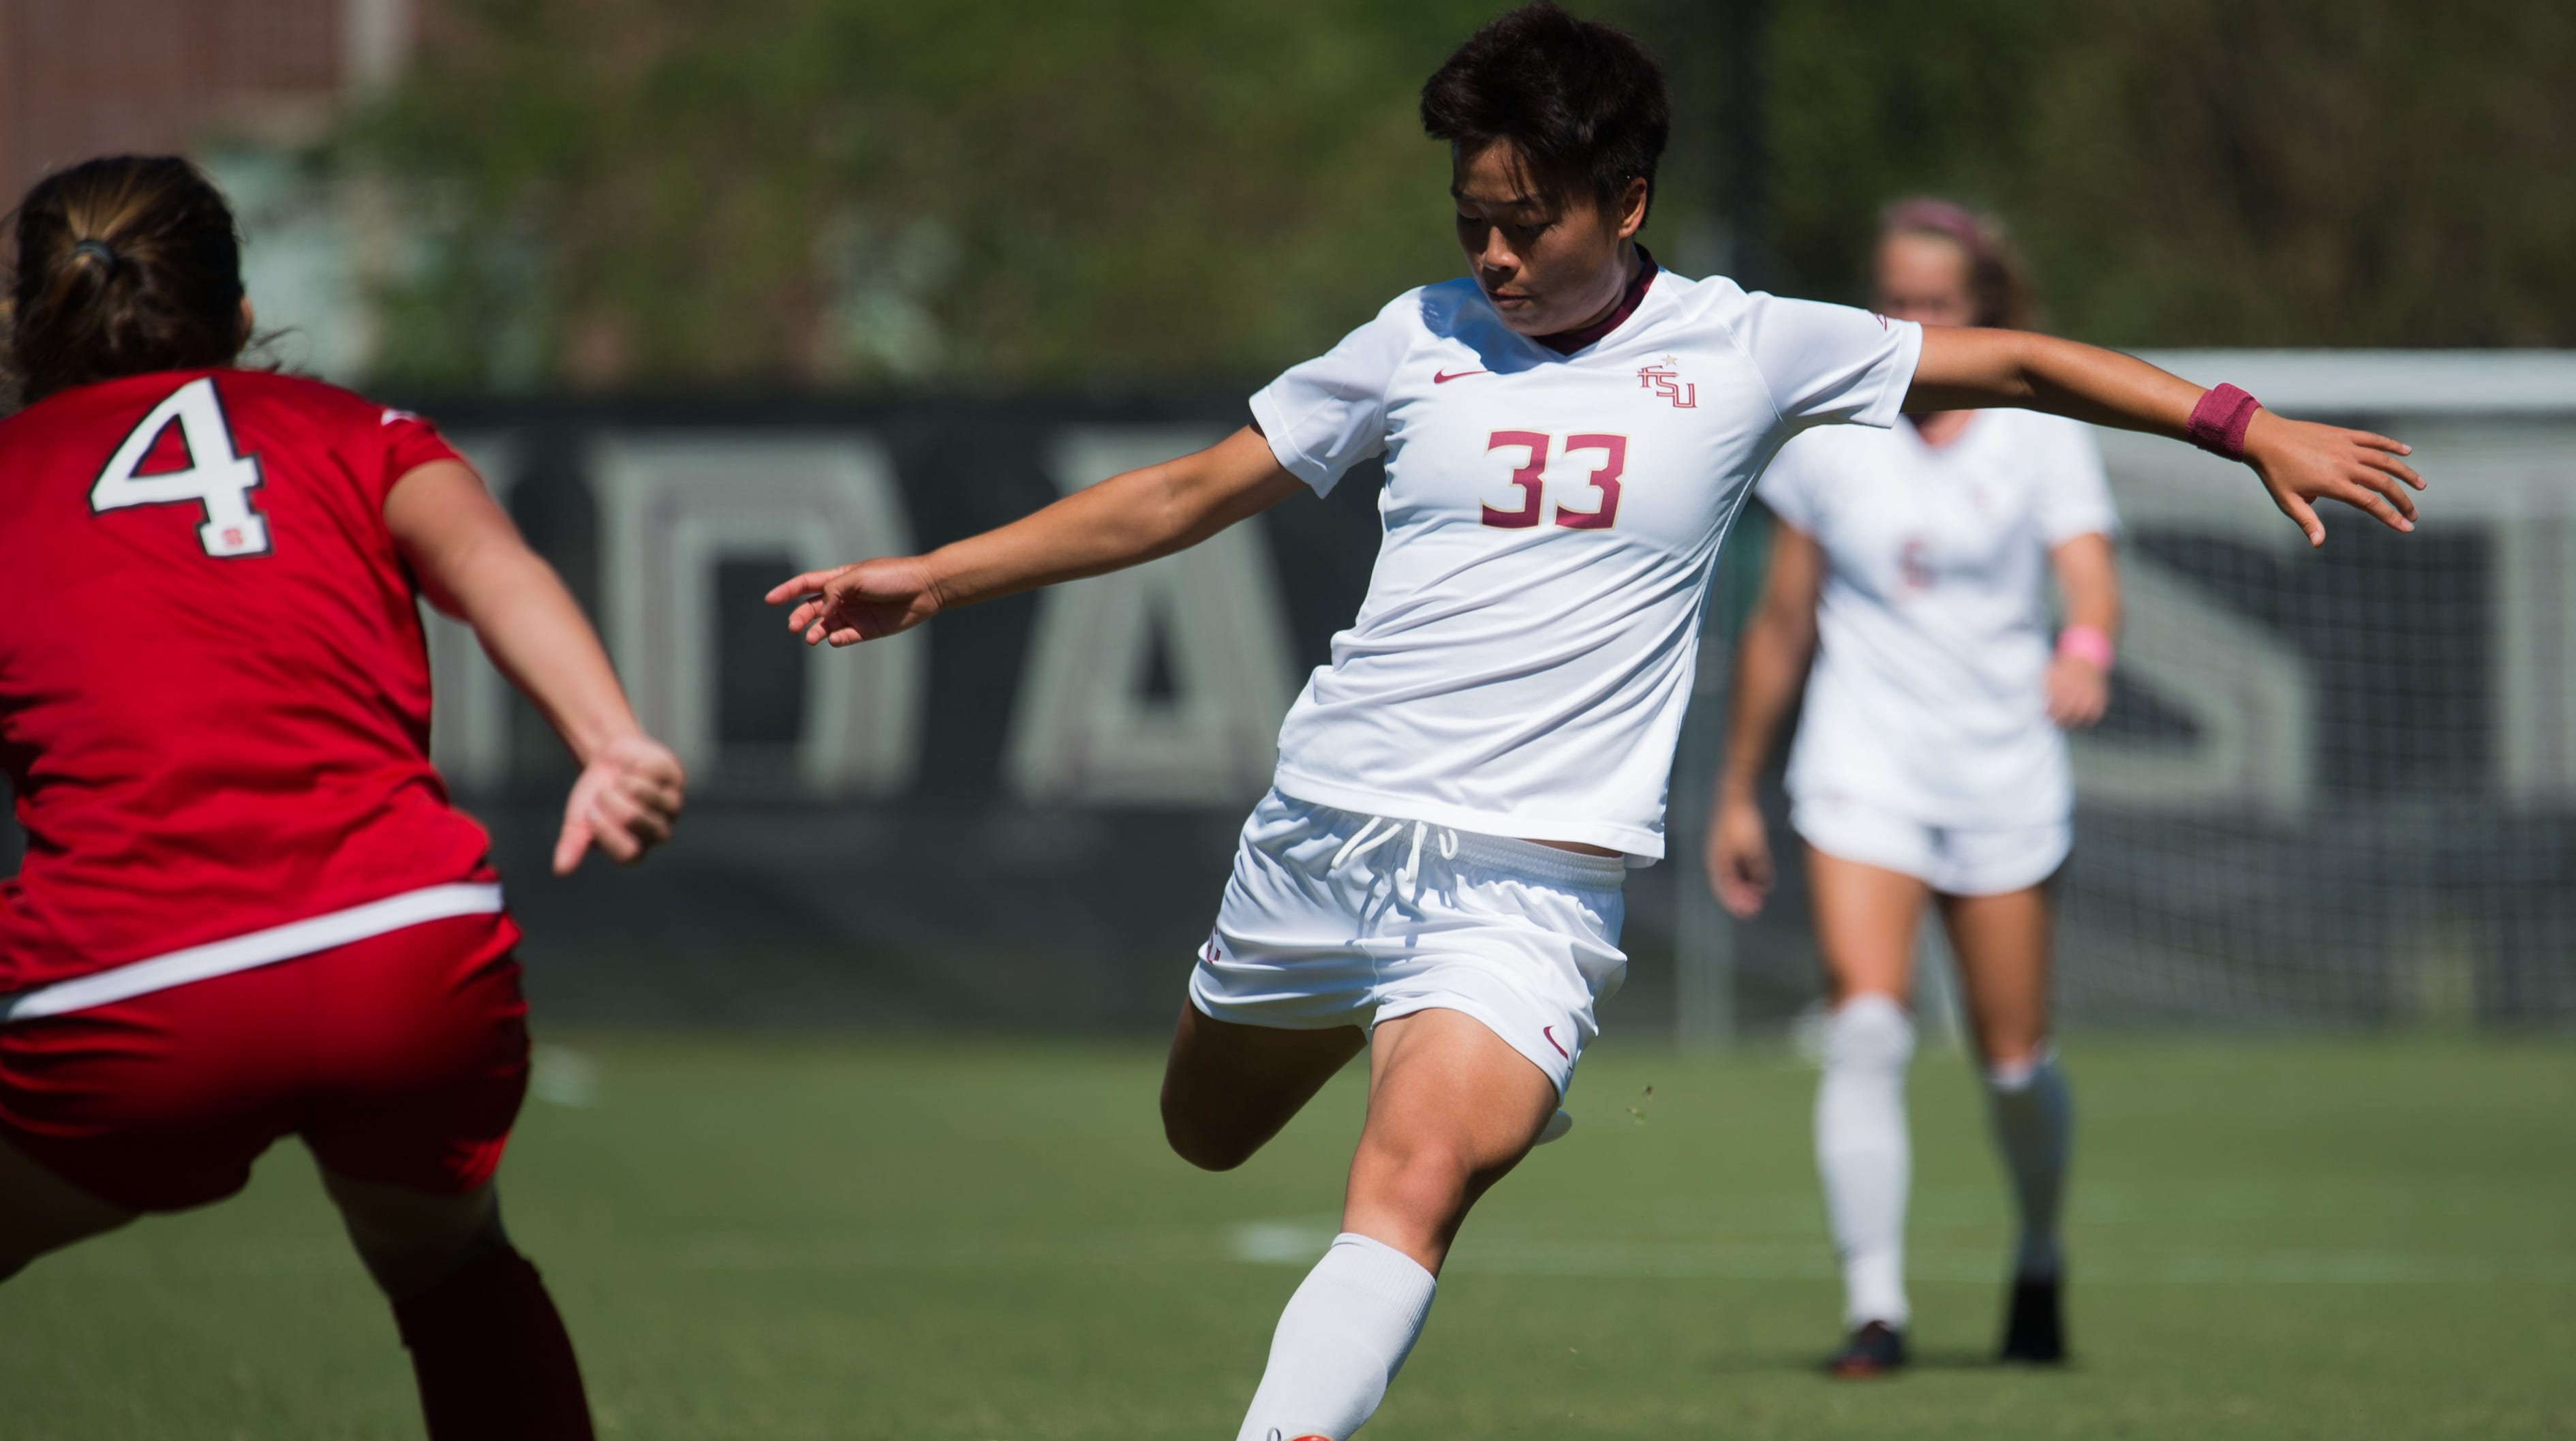 FSU freshman midfielder Yujie Zhao scored her team-high sixth goal of the season during the Seminoles 1-1 draw with NC State on Saturday afternoon.